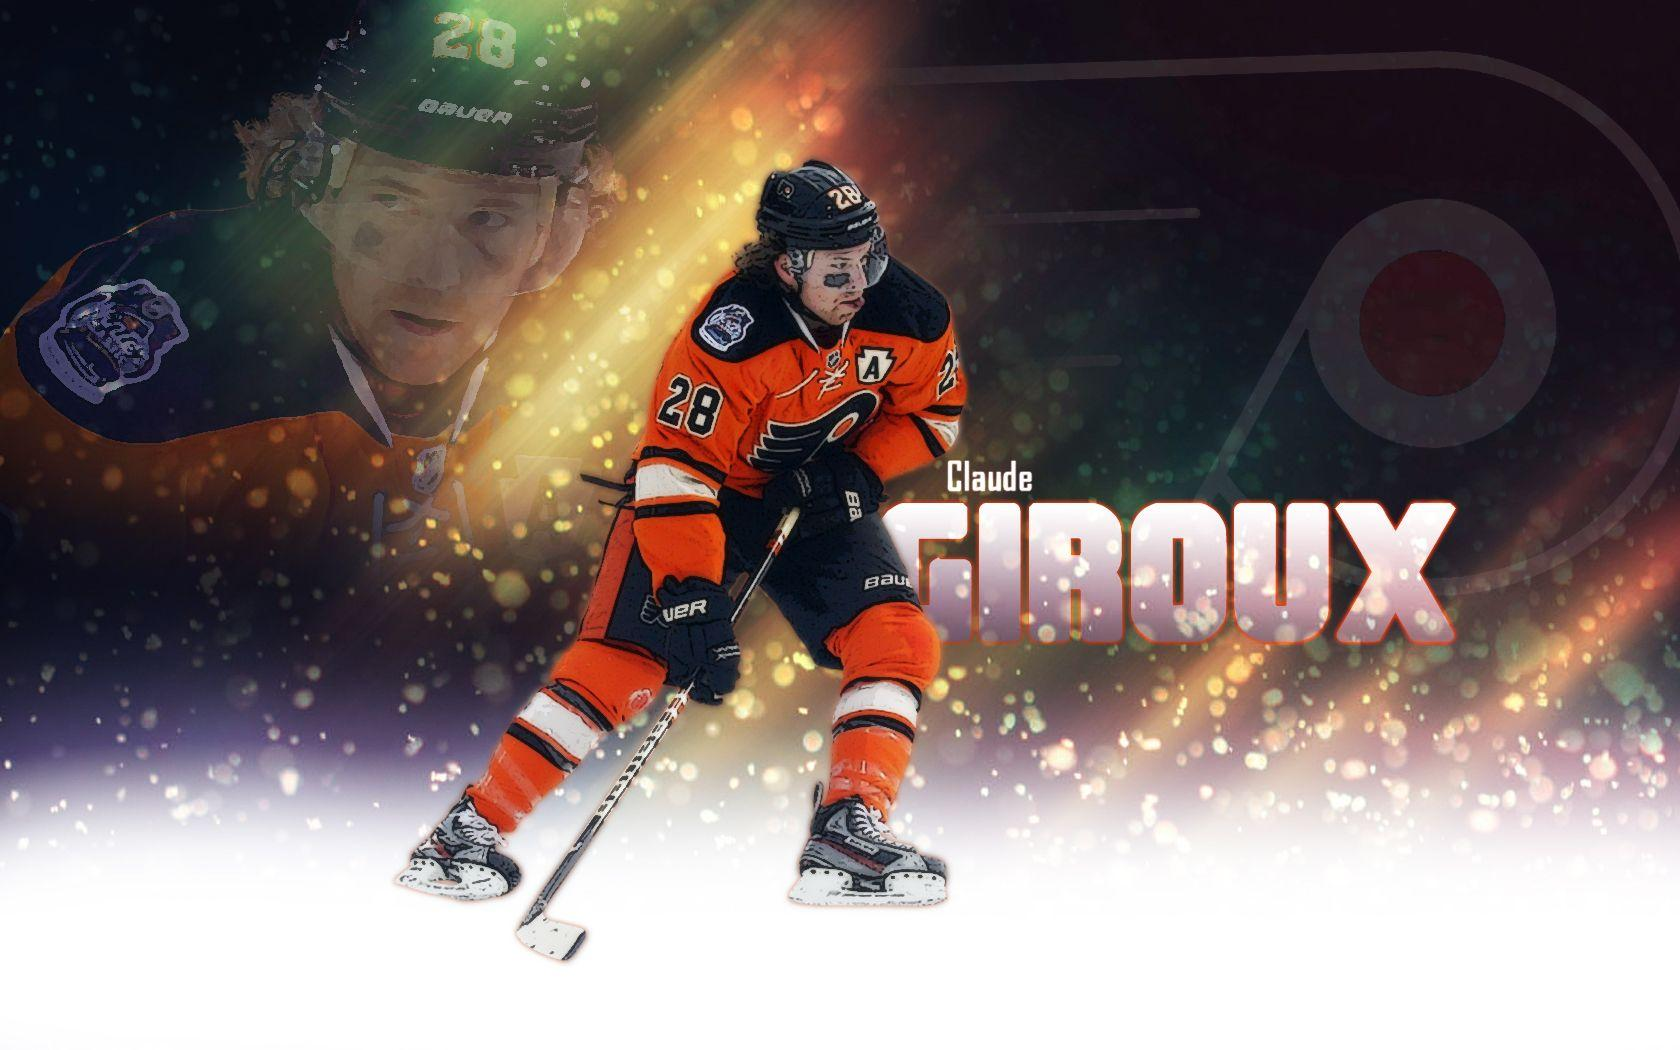 Philadelphia flyers 2018 wallpapers wallpaper cave - Philadelphia flyers wallpaper ...